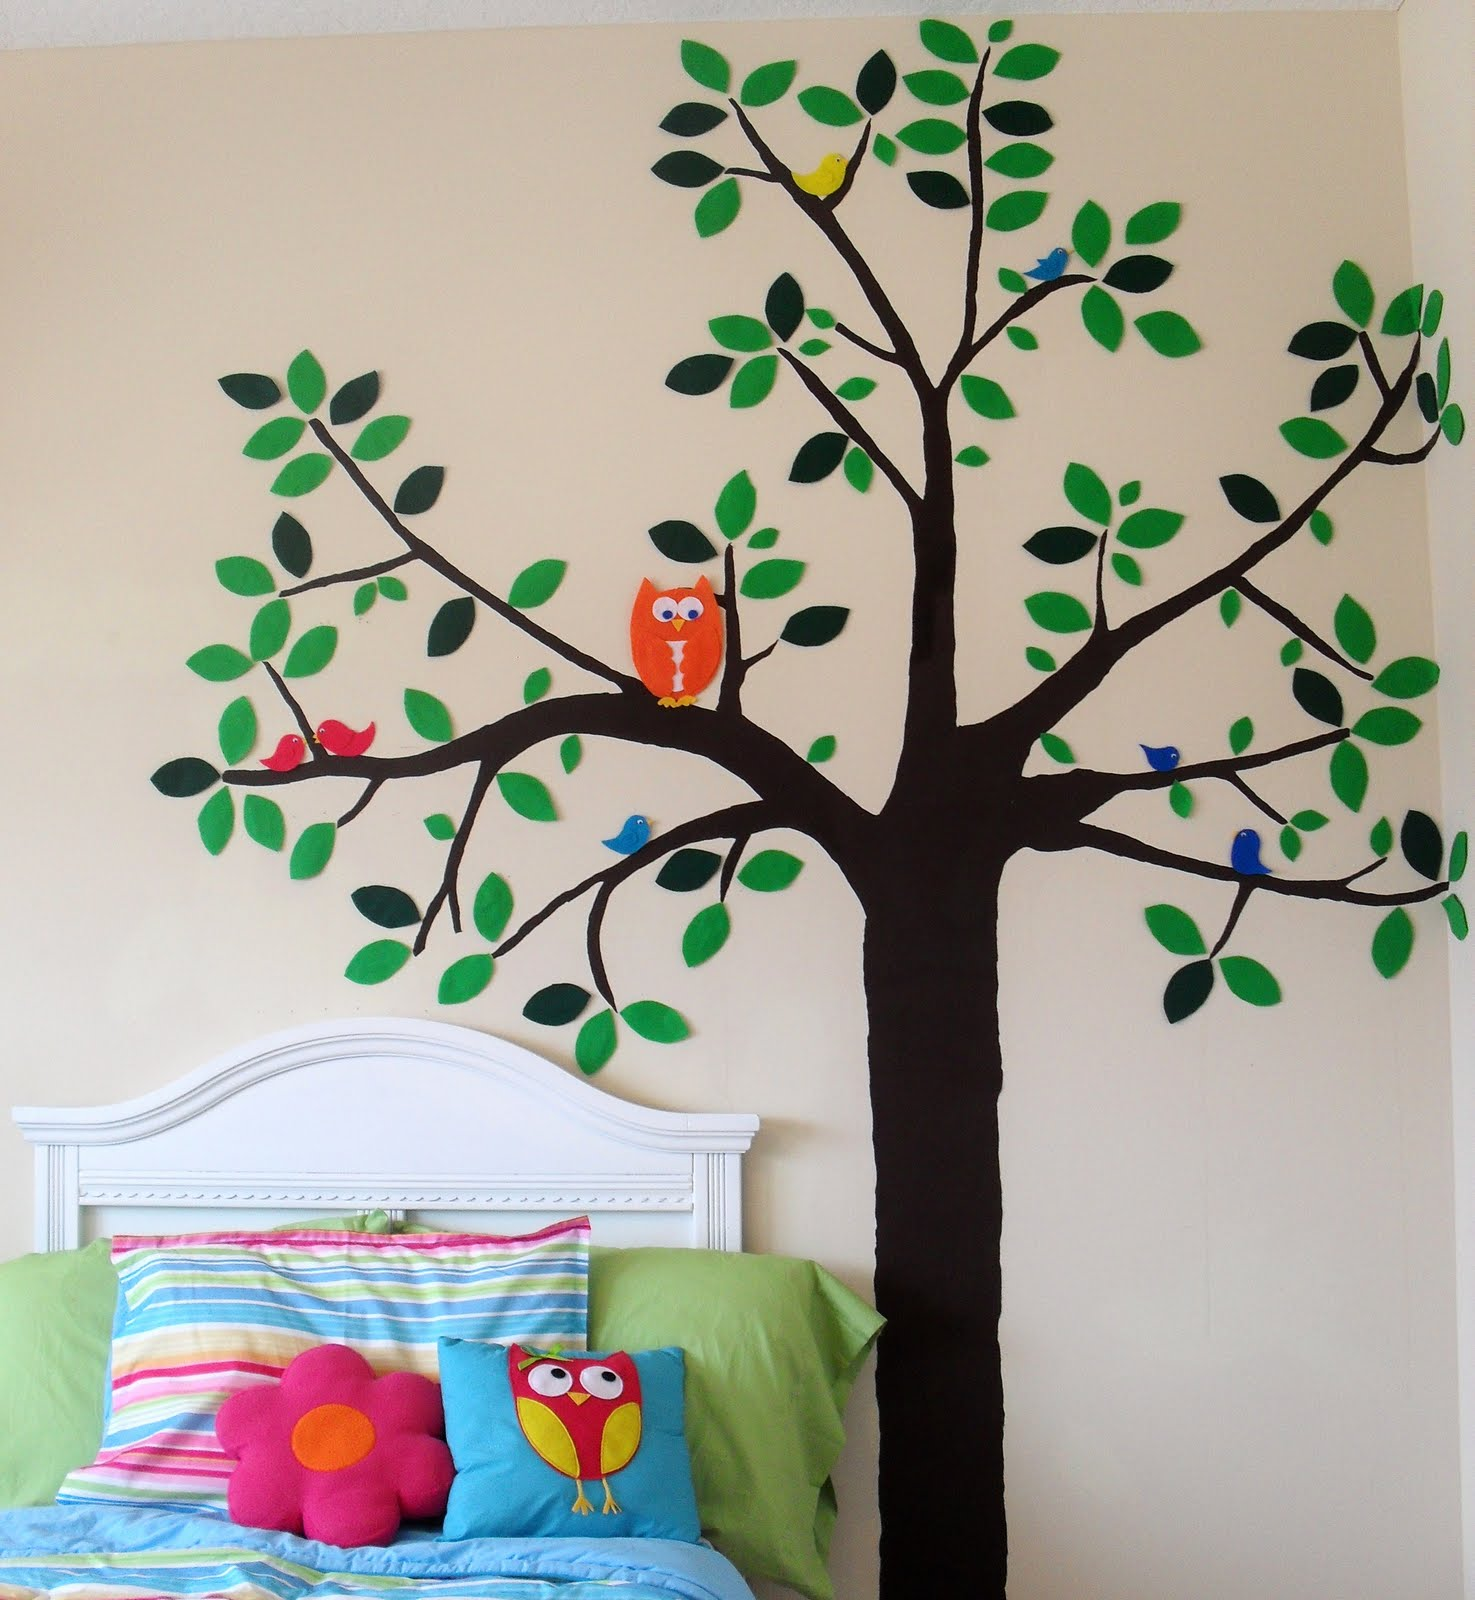 Sew Can Do: CraftShare Featured Guest: DIY Wall Decals